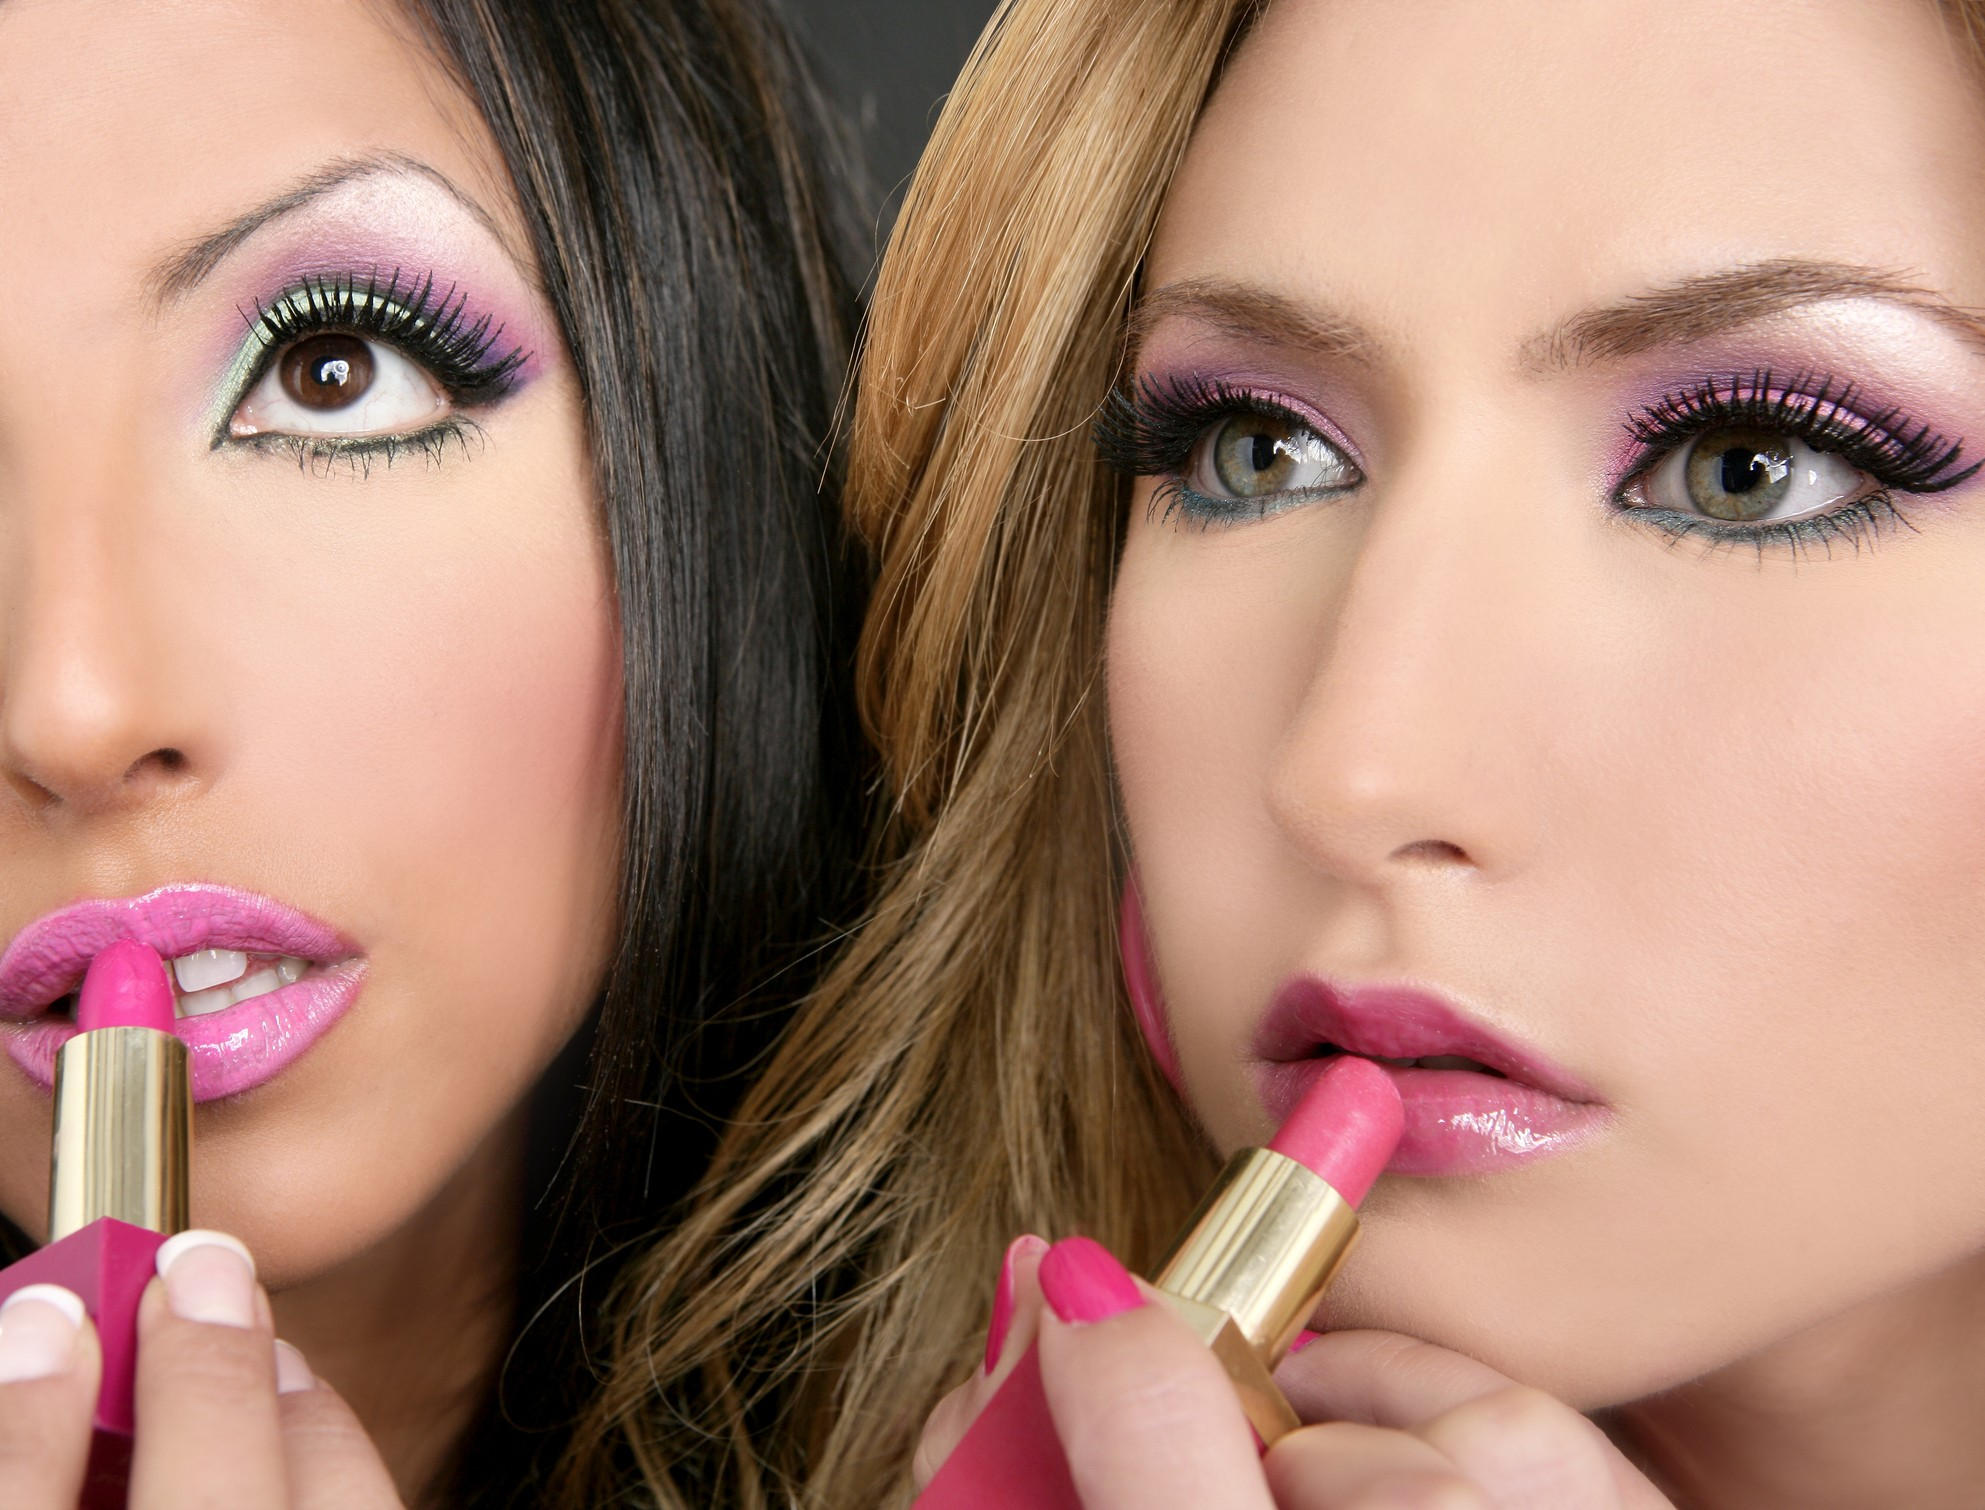 two women in heavy makeup applying lipstick